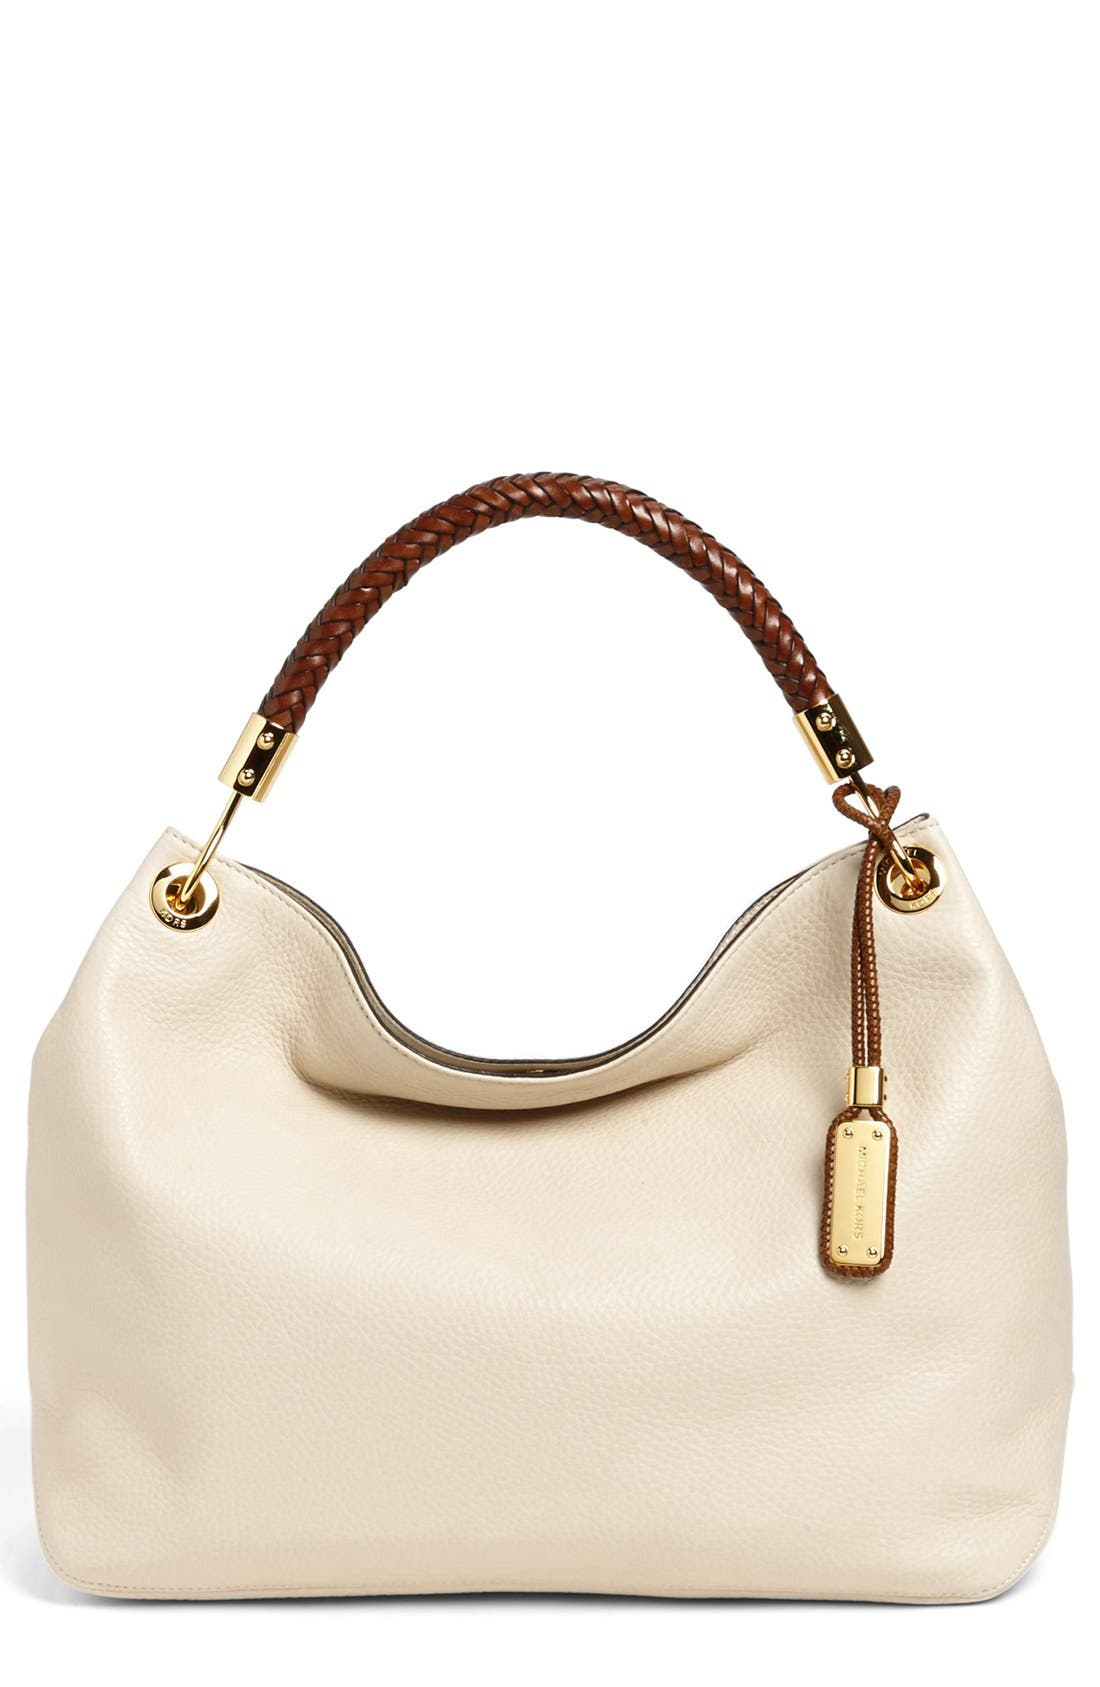 Alternate Image 1 Selected - Michael Kors 'Large Skorpios' Leather Shoulder Bag